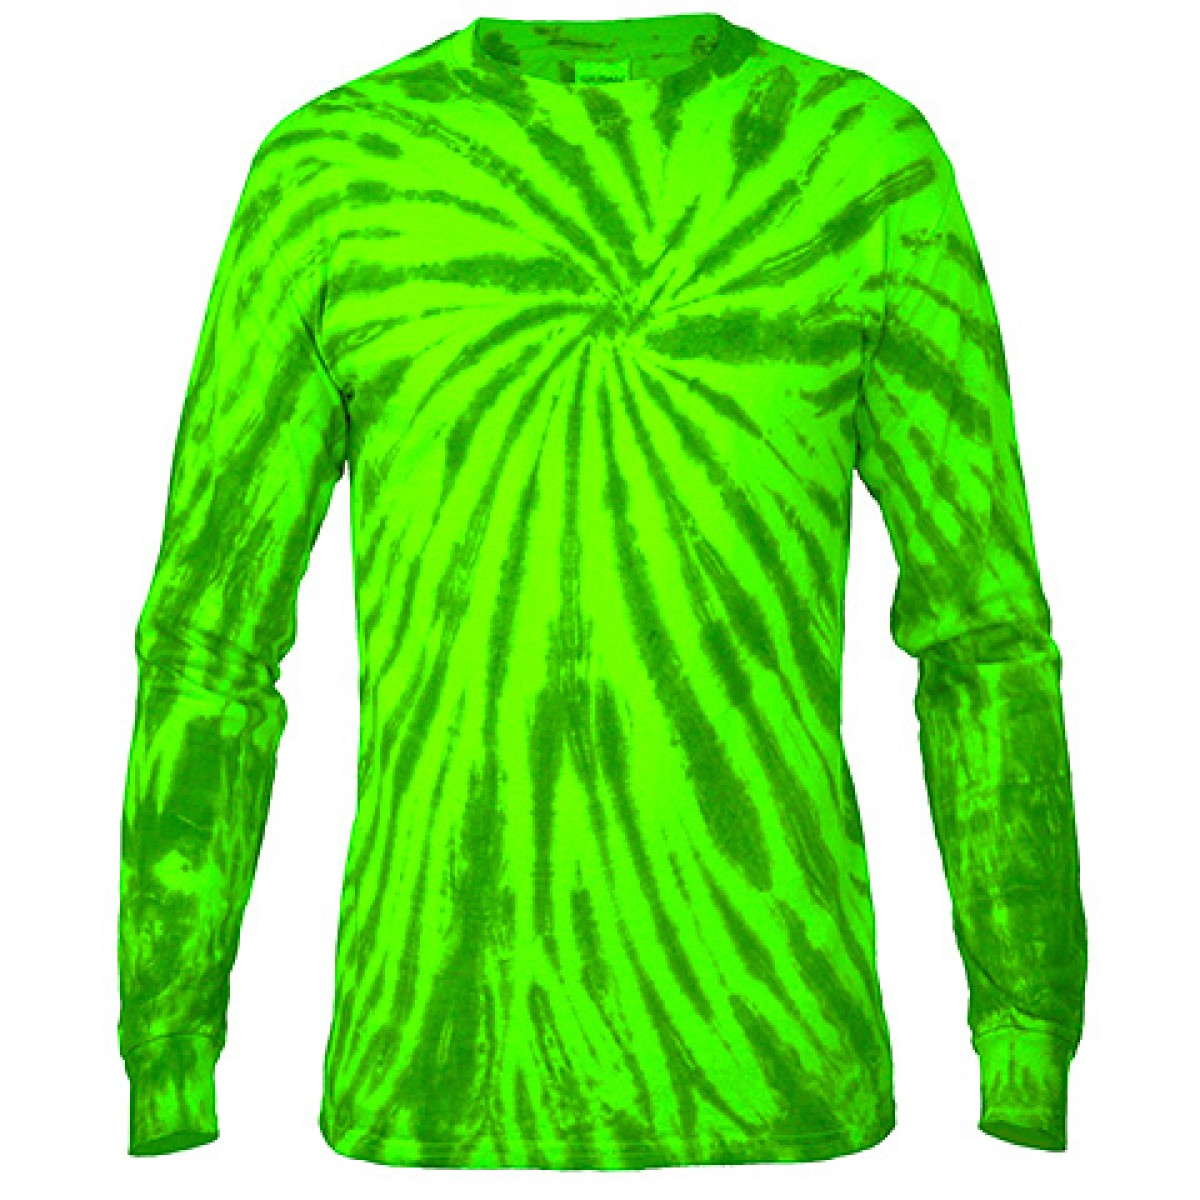 Multi Color Tie-Dye Long Sleeve Shirt -Green-S